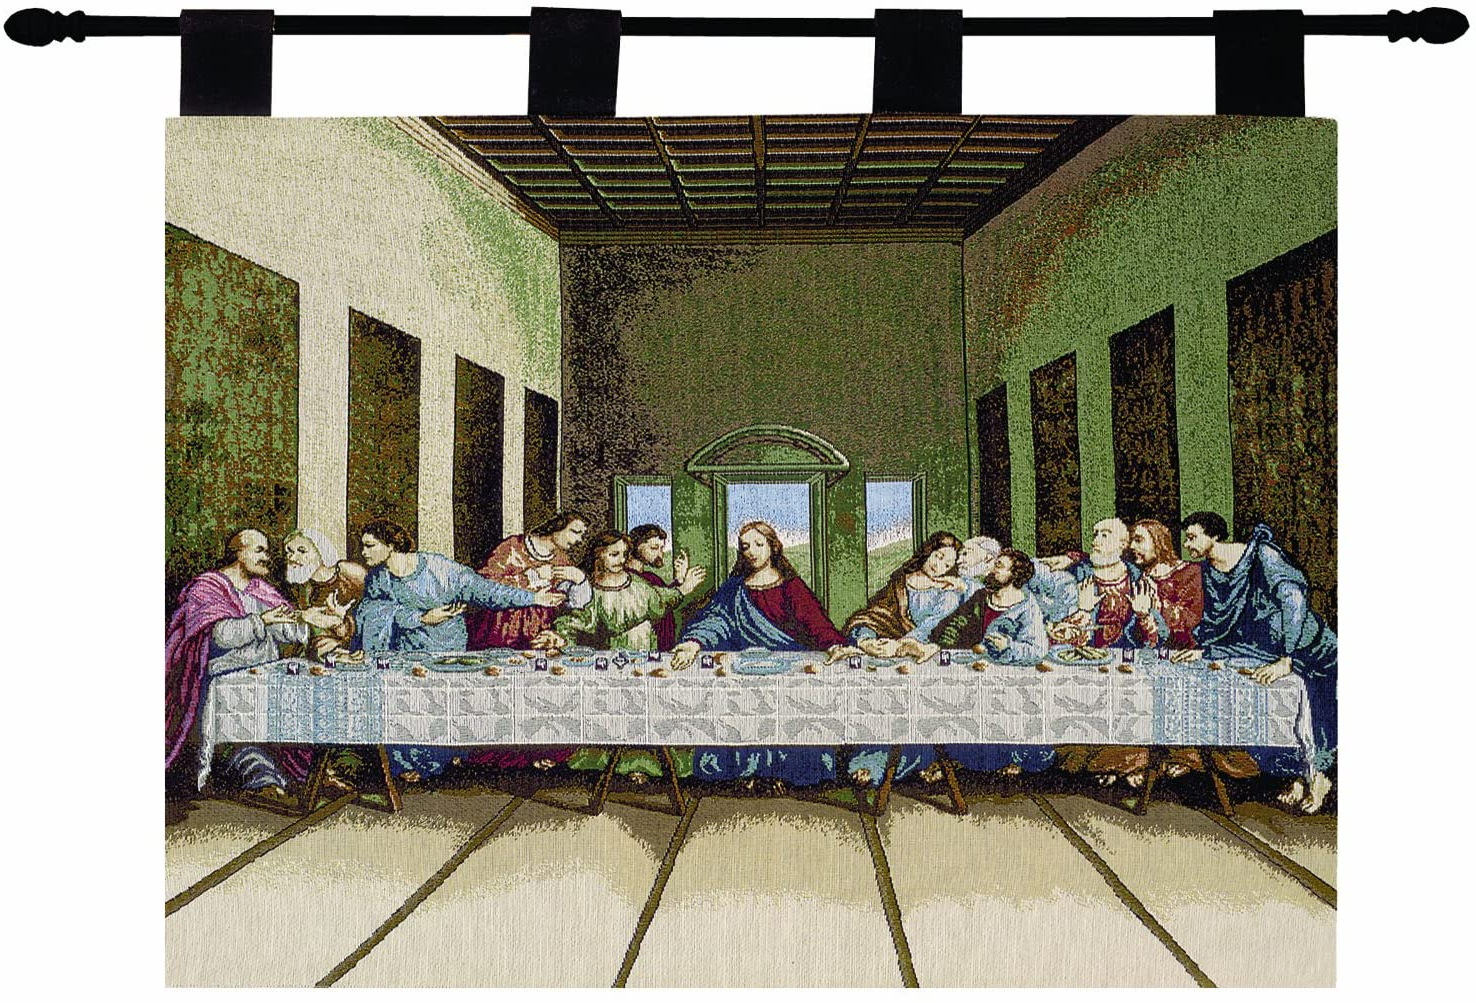 2020 Blended Fabric Freedom Verse Tapestries And Wall Hangings Inside Manual Inspirational Collection Wall Hanging And Finial Rod, Last Supper, 36 X 26 Inch (View 2 of 20)